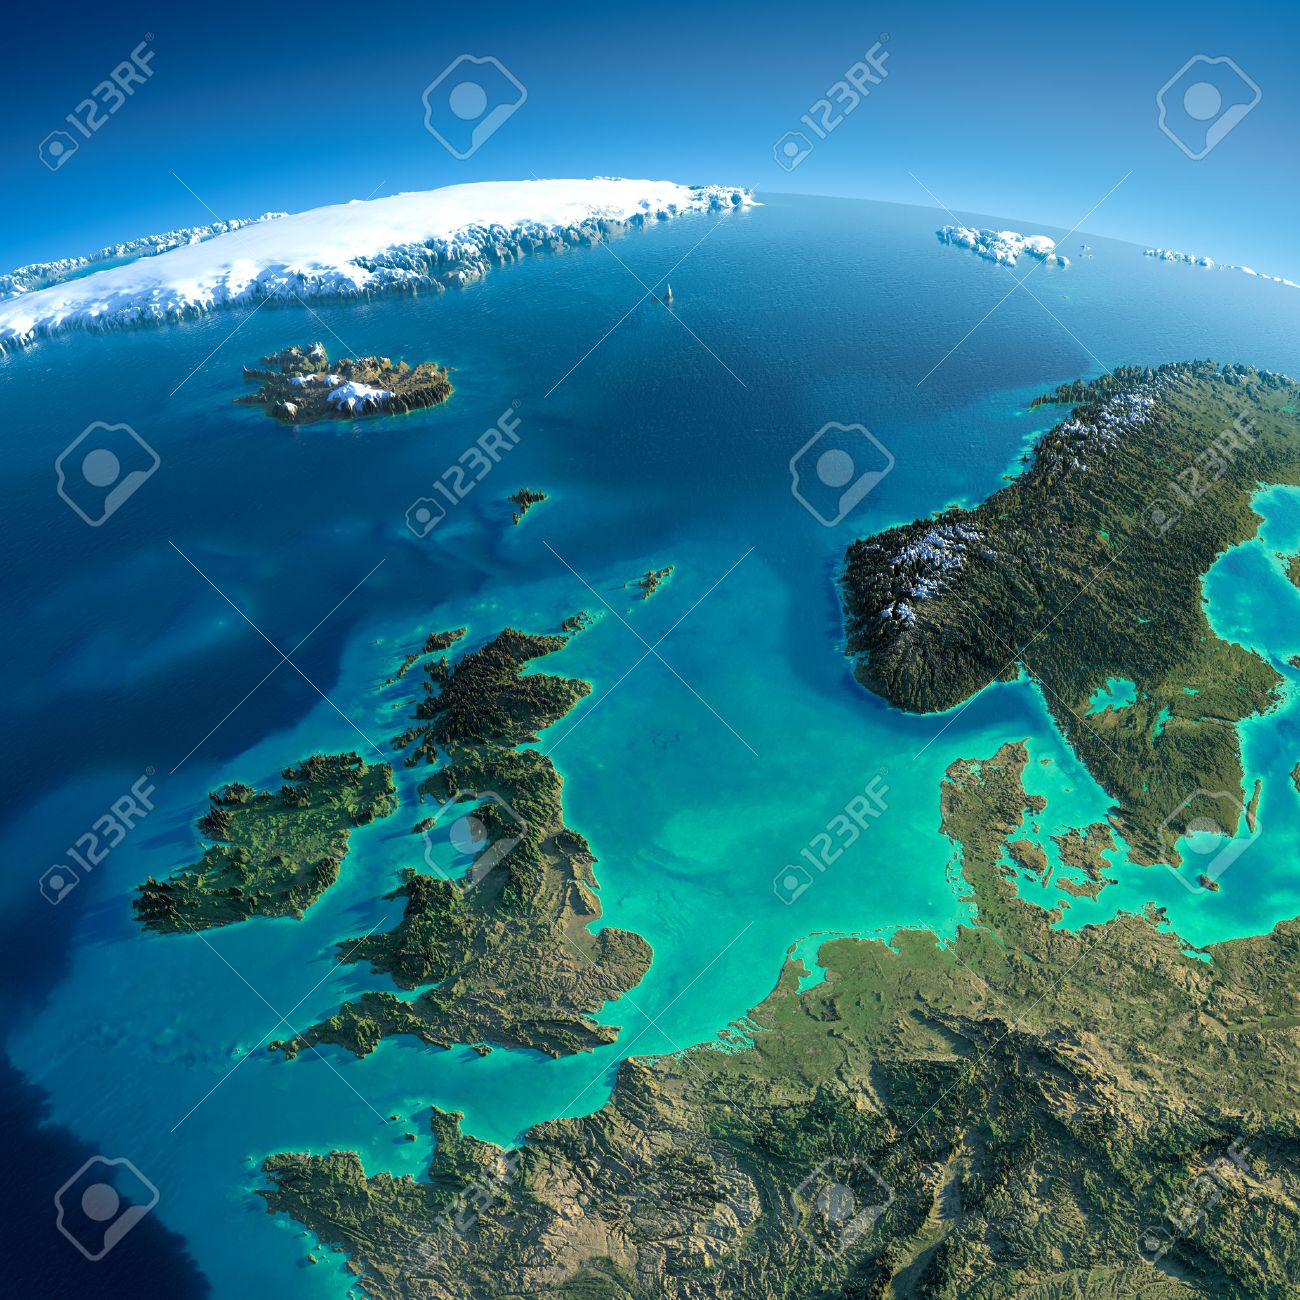 Highly detailed planet Earth in the morning Exaggerated precise relief lit morning sun Detailed Earth United Kingdom and the North Sea - 26594832